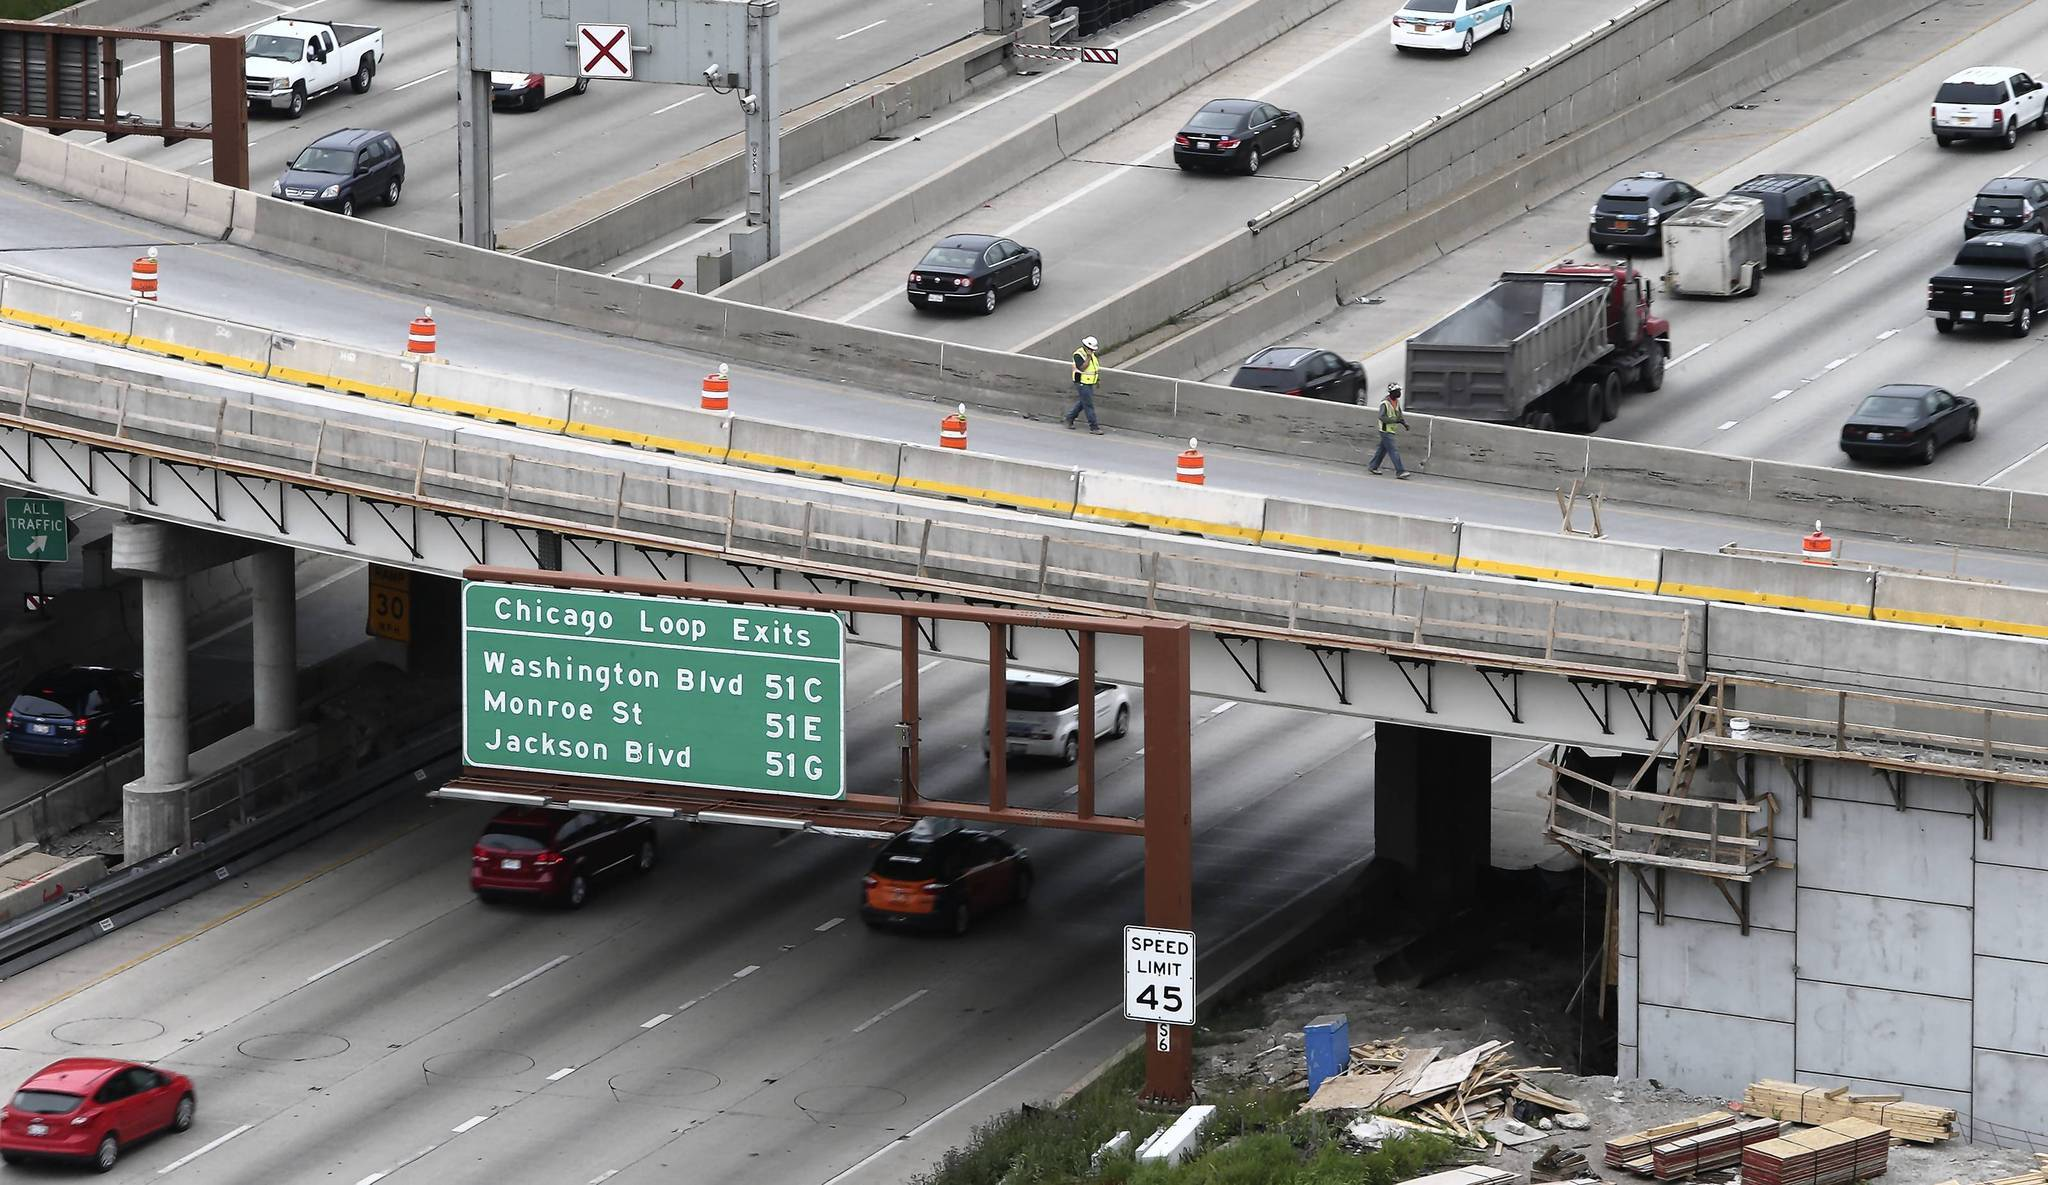 Workers walk on the part of the Ohio-Ontario interchange bridge planned for demolition, just southeast of the Ogden overpass. June 7-8 will be the first of three weekends that traffic will be dramatically impacted on the Kennedy expressway due to the demolition.